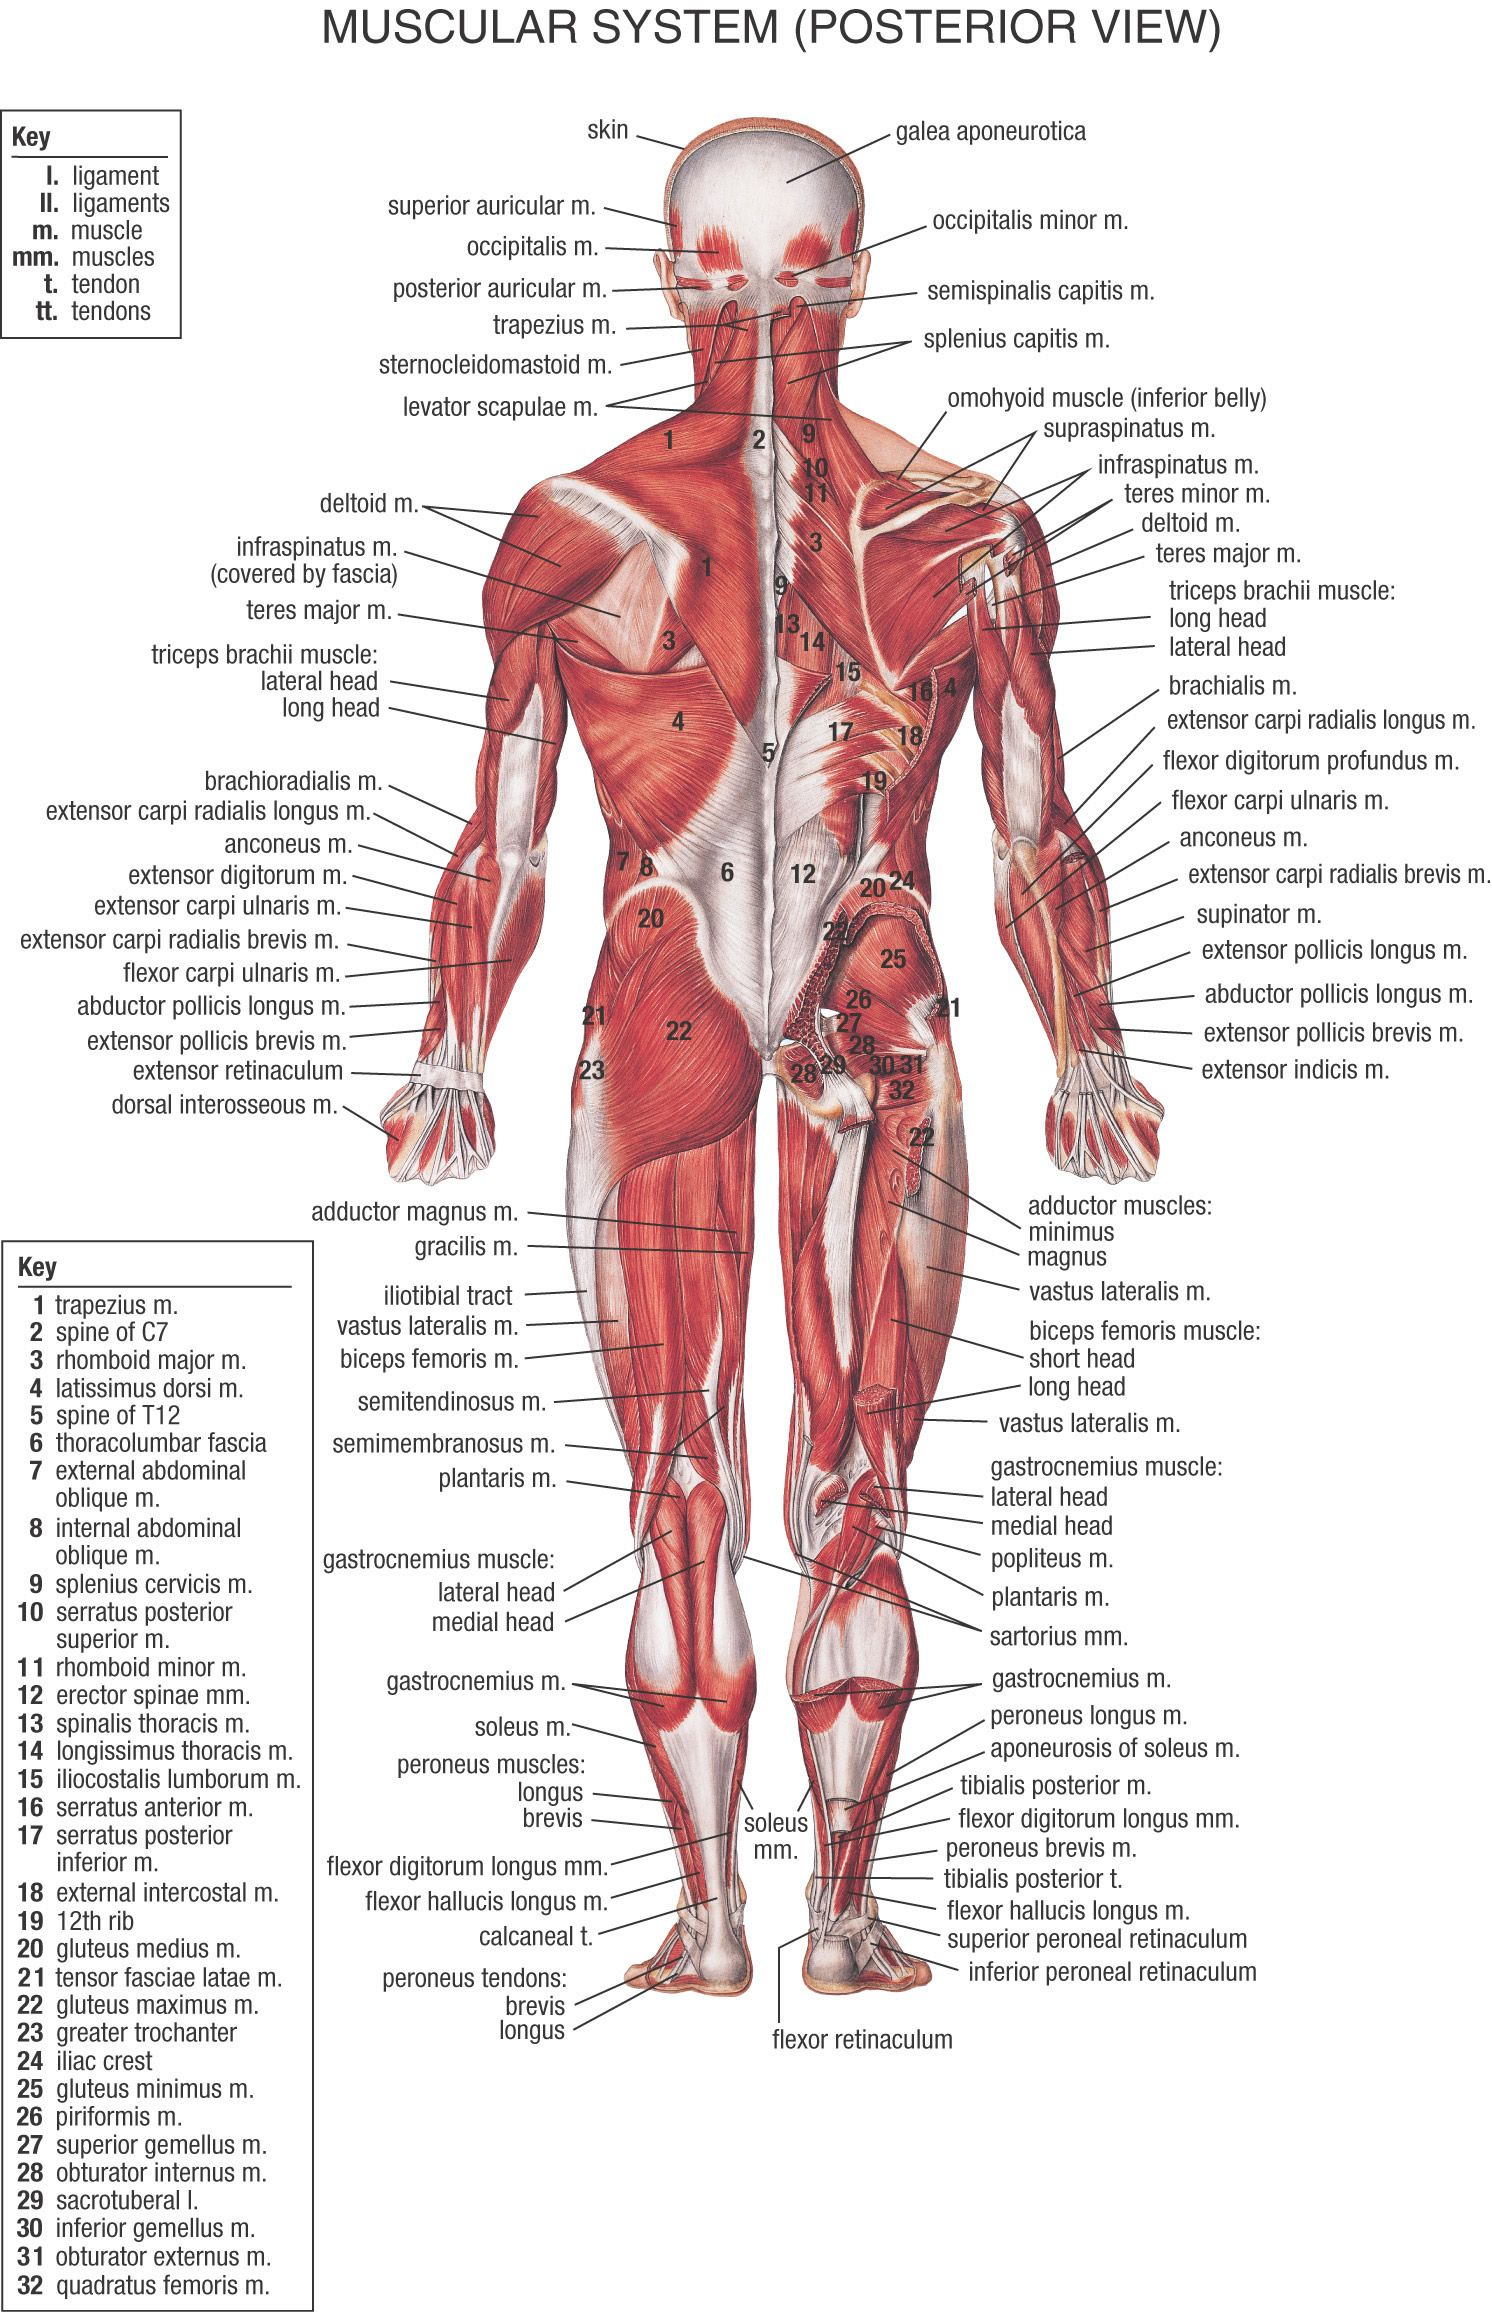 HB Muscular System - Posterior view | Muscles in fitness | Pinterest ...